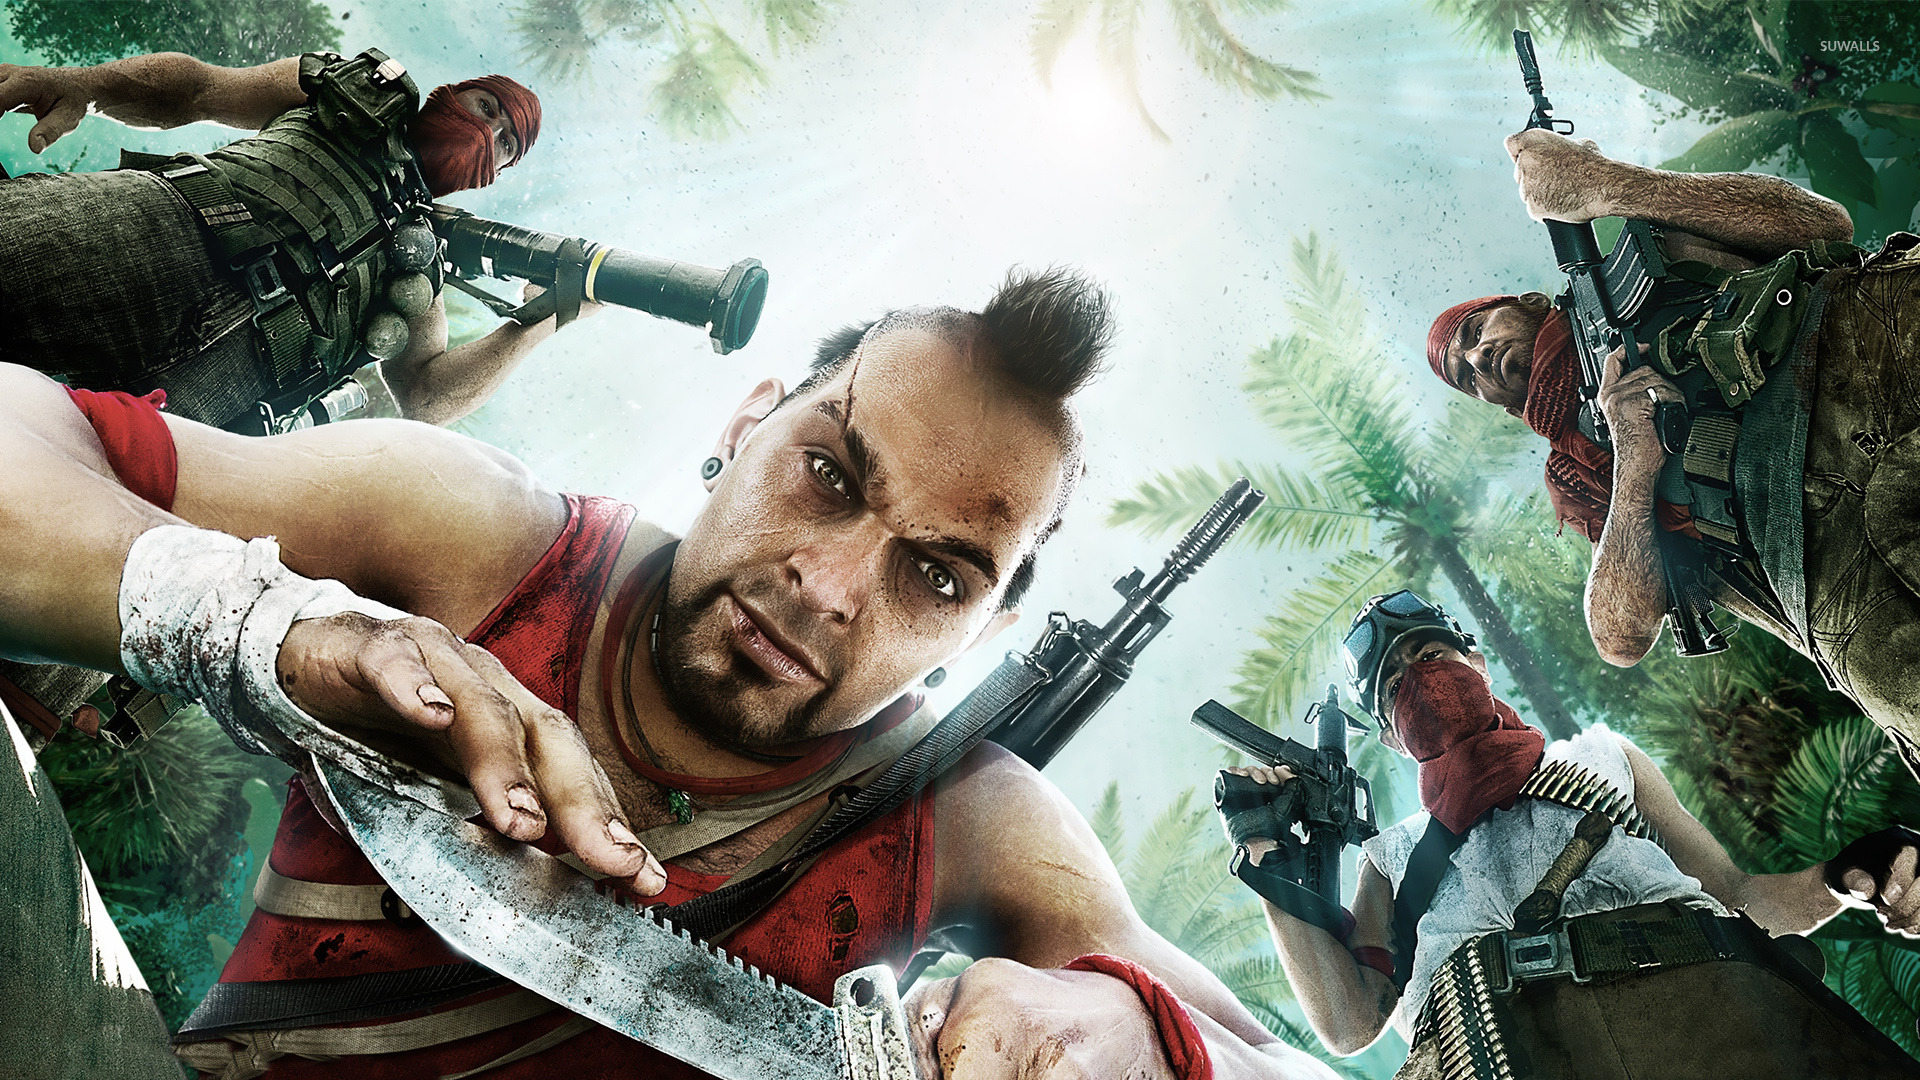 Vaas   Far Cry 3 wallpaper   Game wallpapers   16019 1920x1080